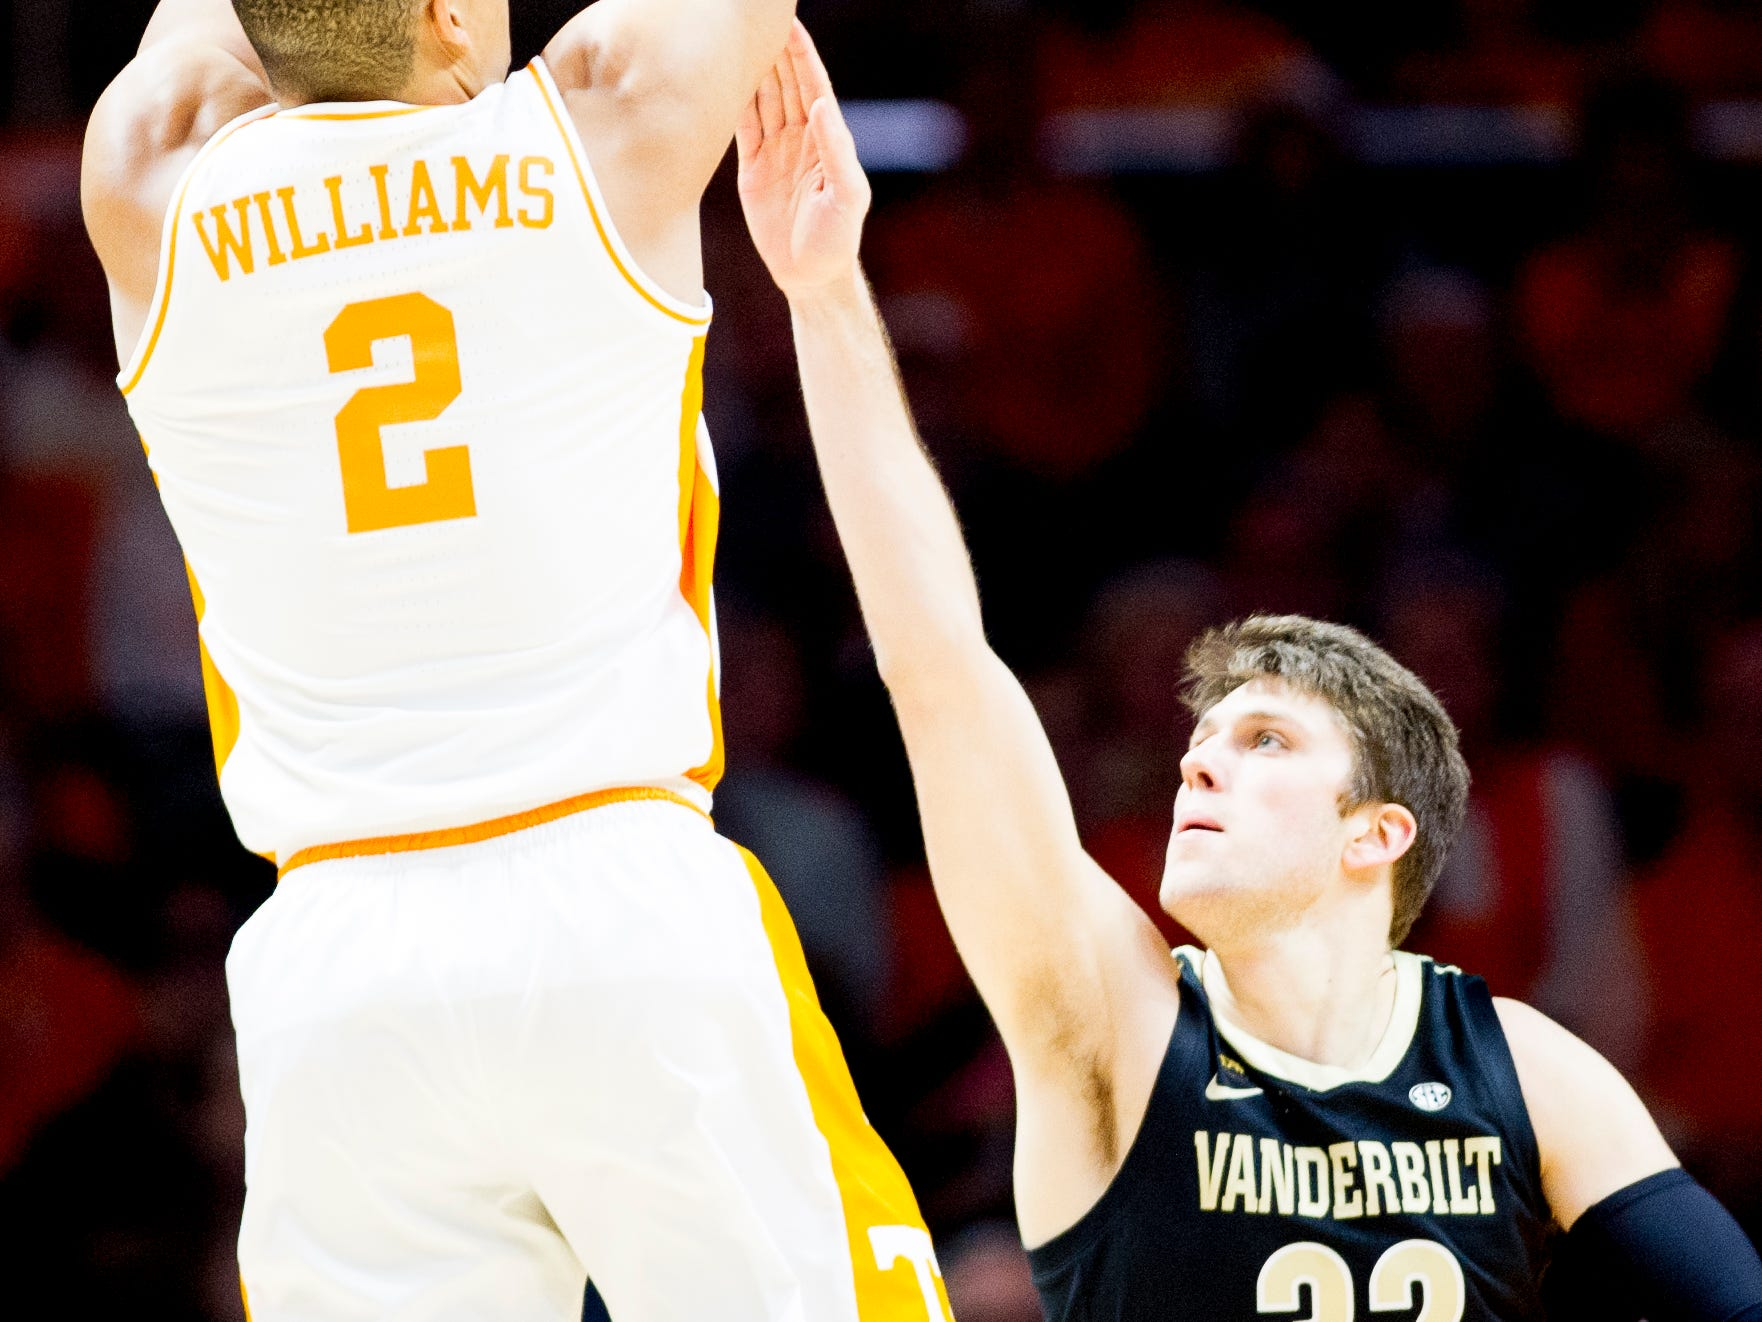 Tennessee forward Grant Williams (2) shoots the ball as Vanderbilt forward Matt Ryan (32) defends during a game between Tennessee and Vanderbilt at Thompson-Boling Arena in Knoxville, Tennessee on Tuesday, February 19, 2019.